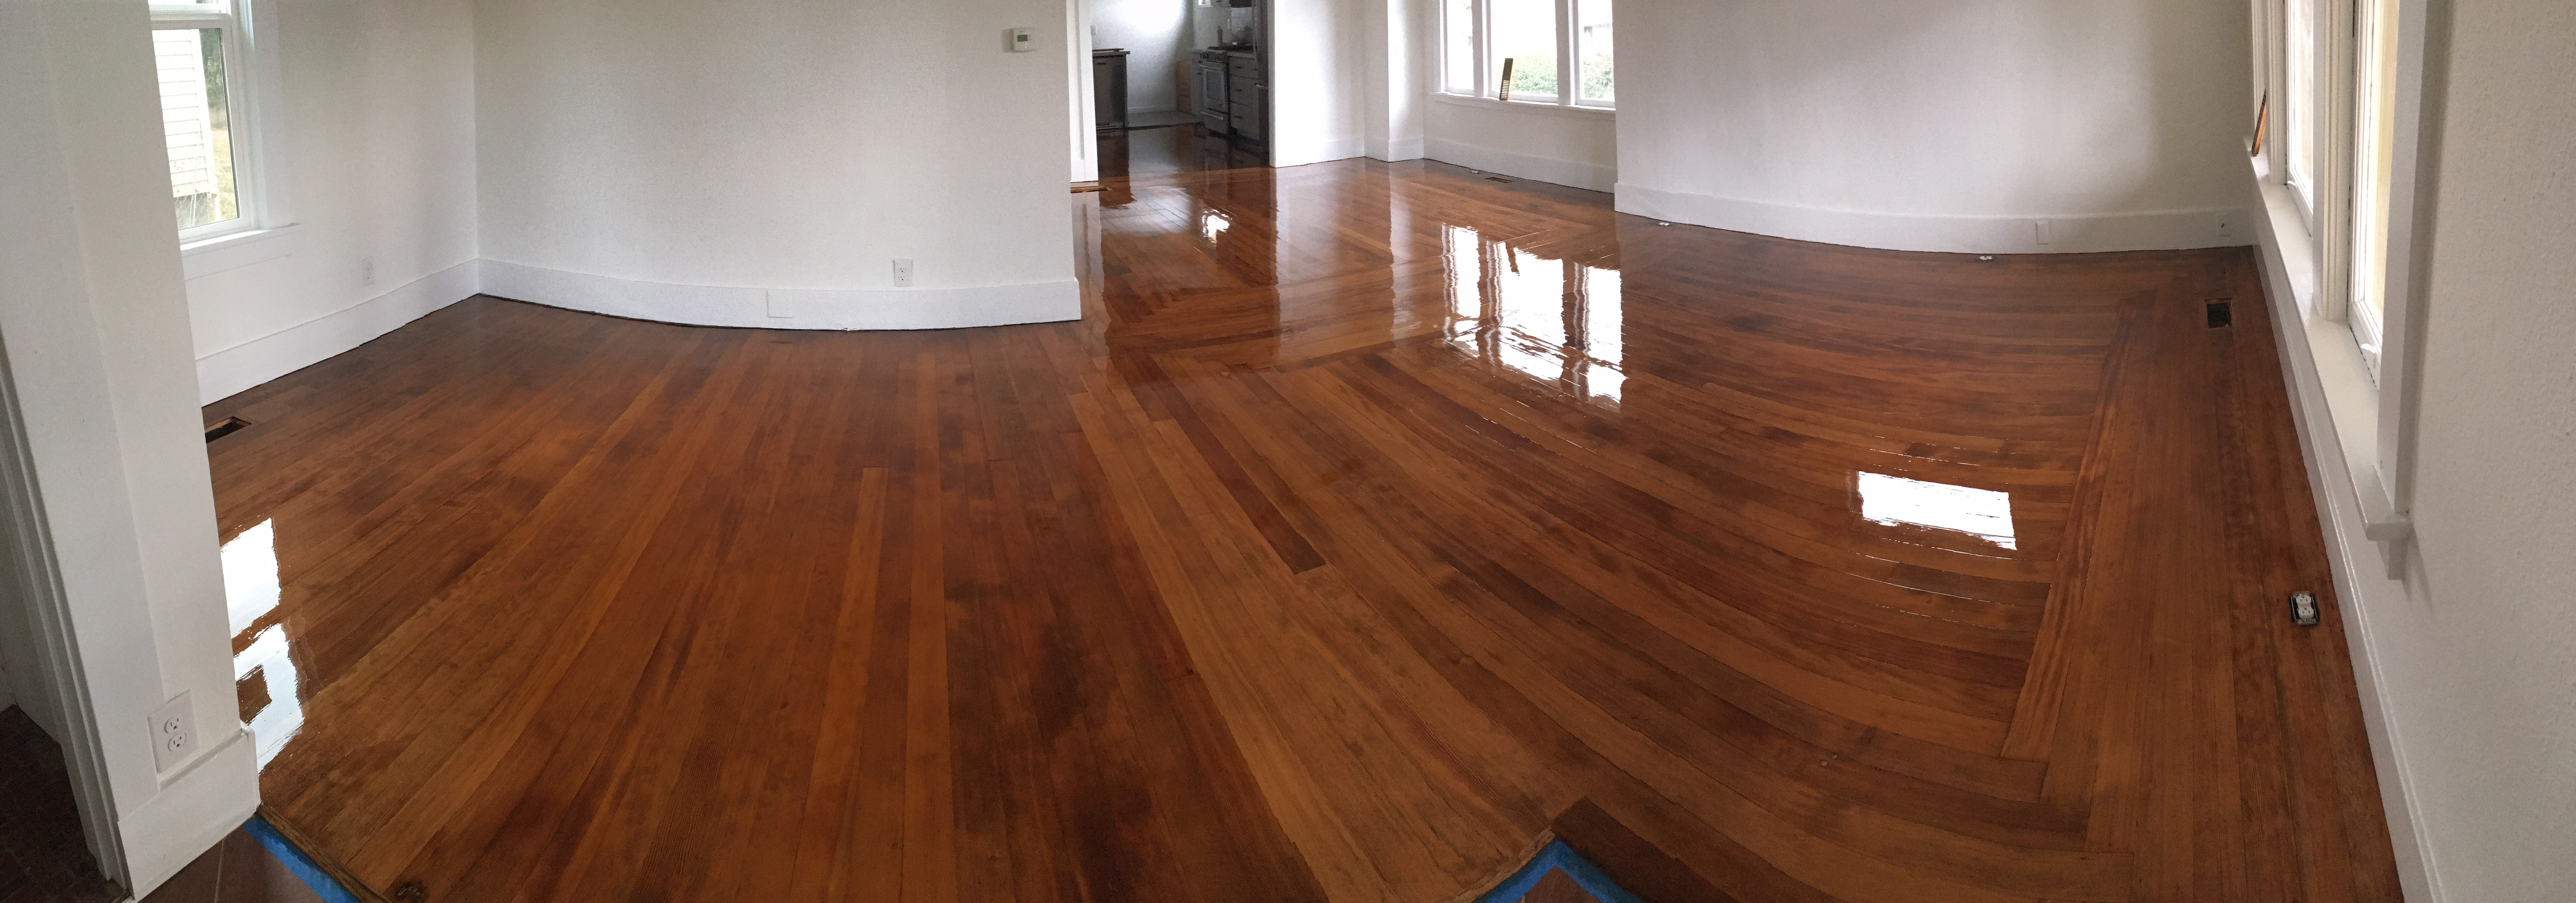 Hardwood Refinish and Stain